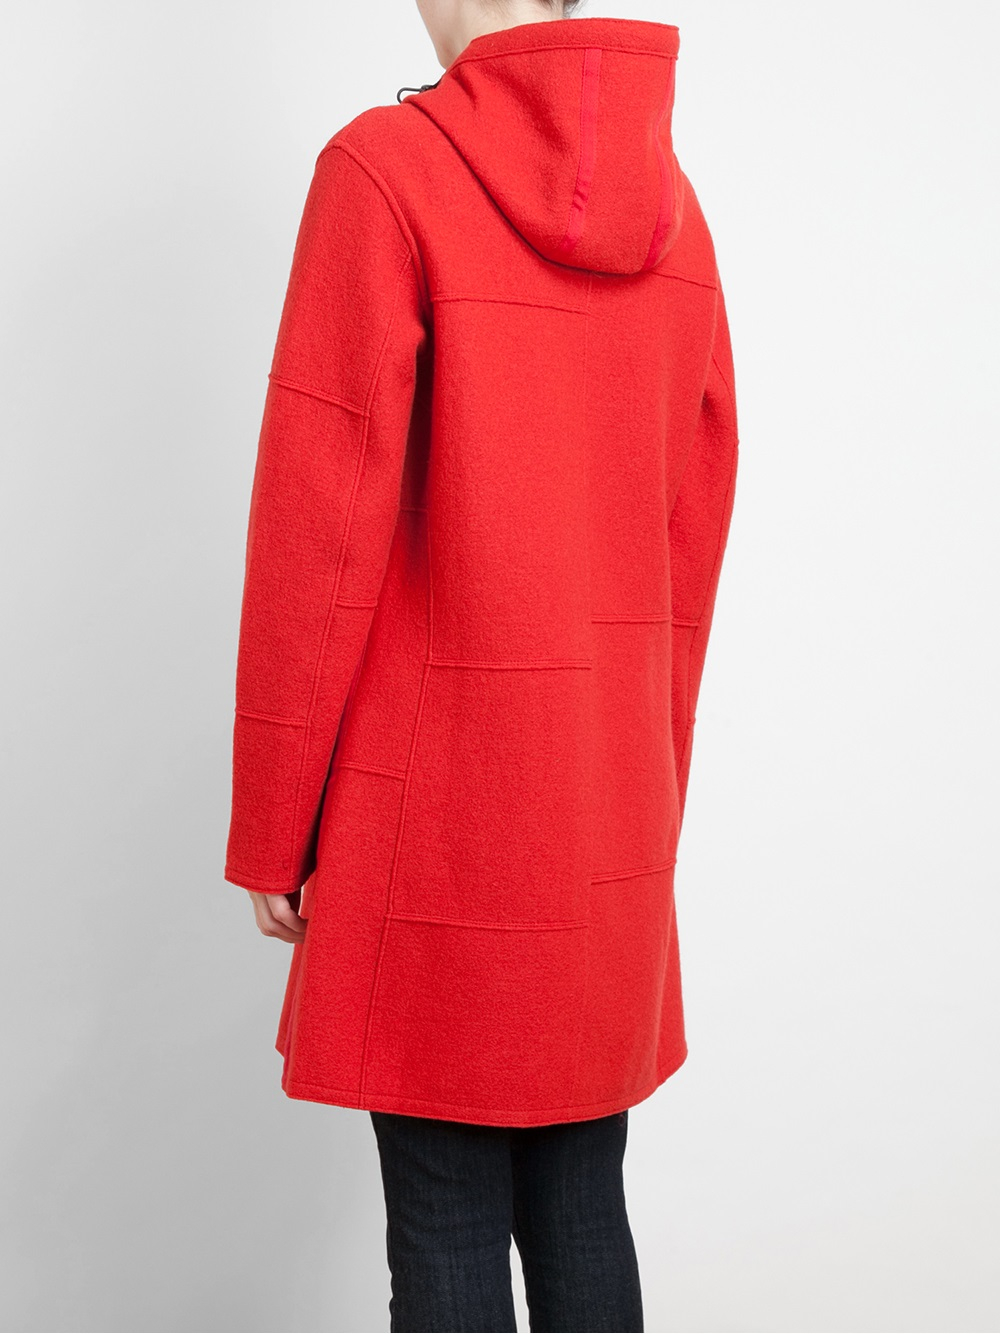 Frauenschuh Barbara Patchwork Boiled Wool Parka Coat in Red | Lyst